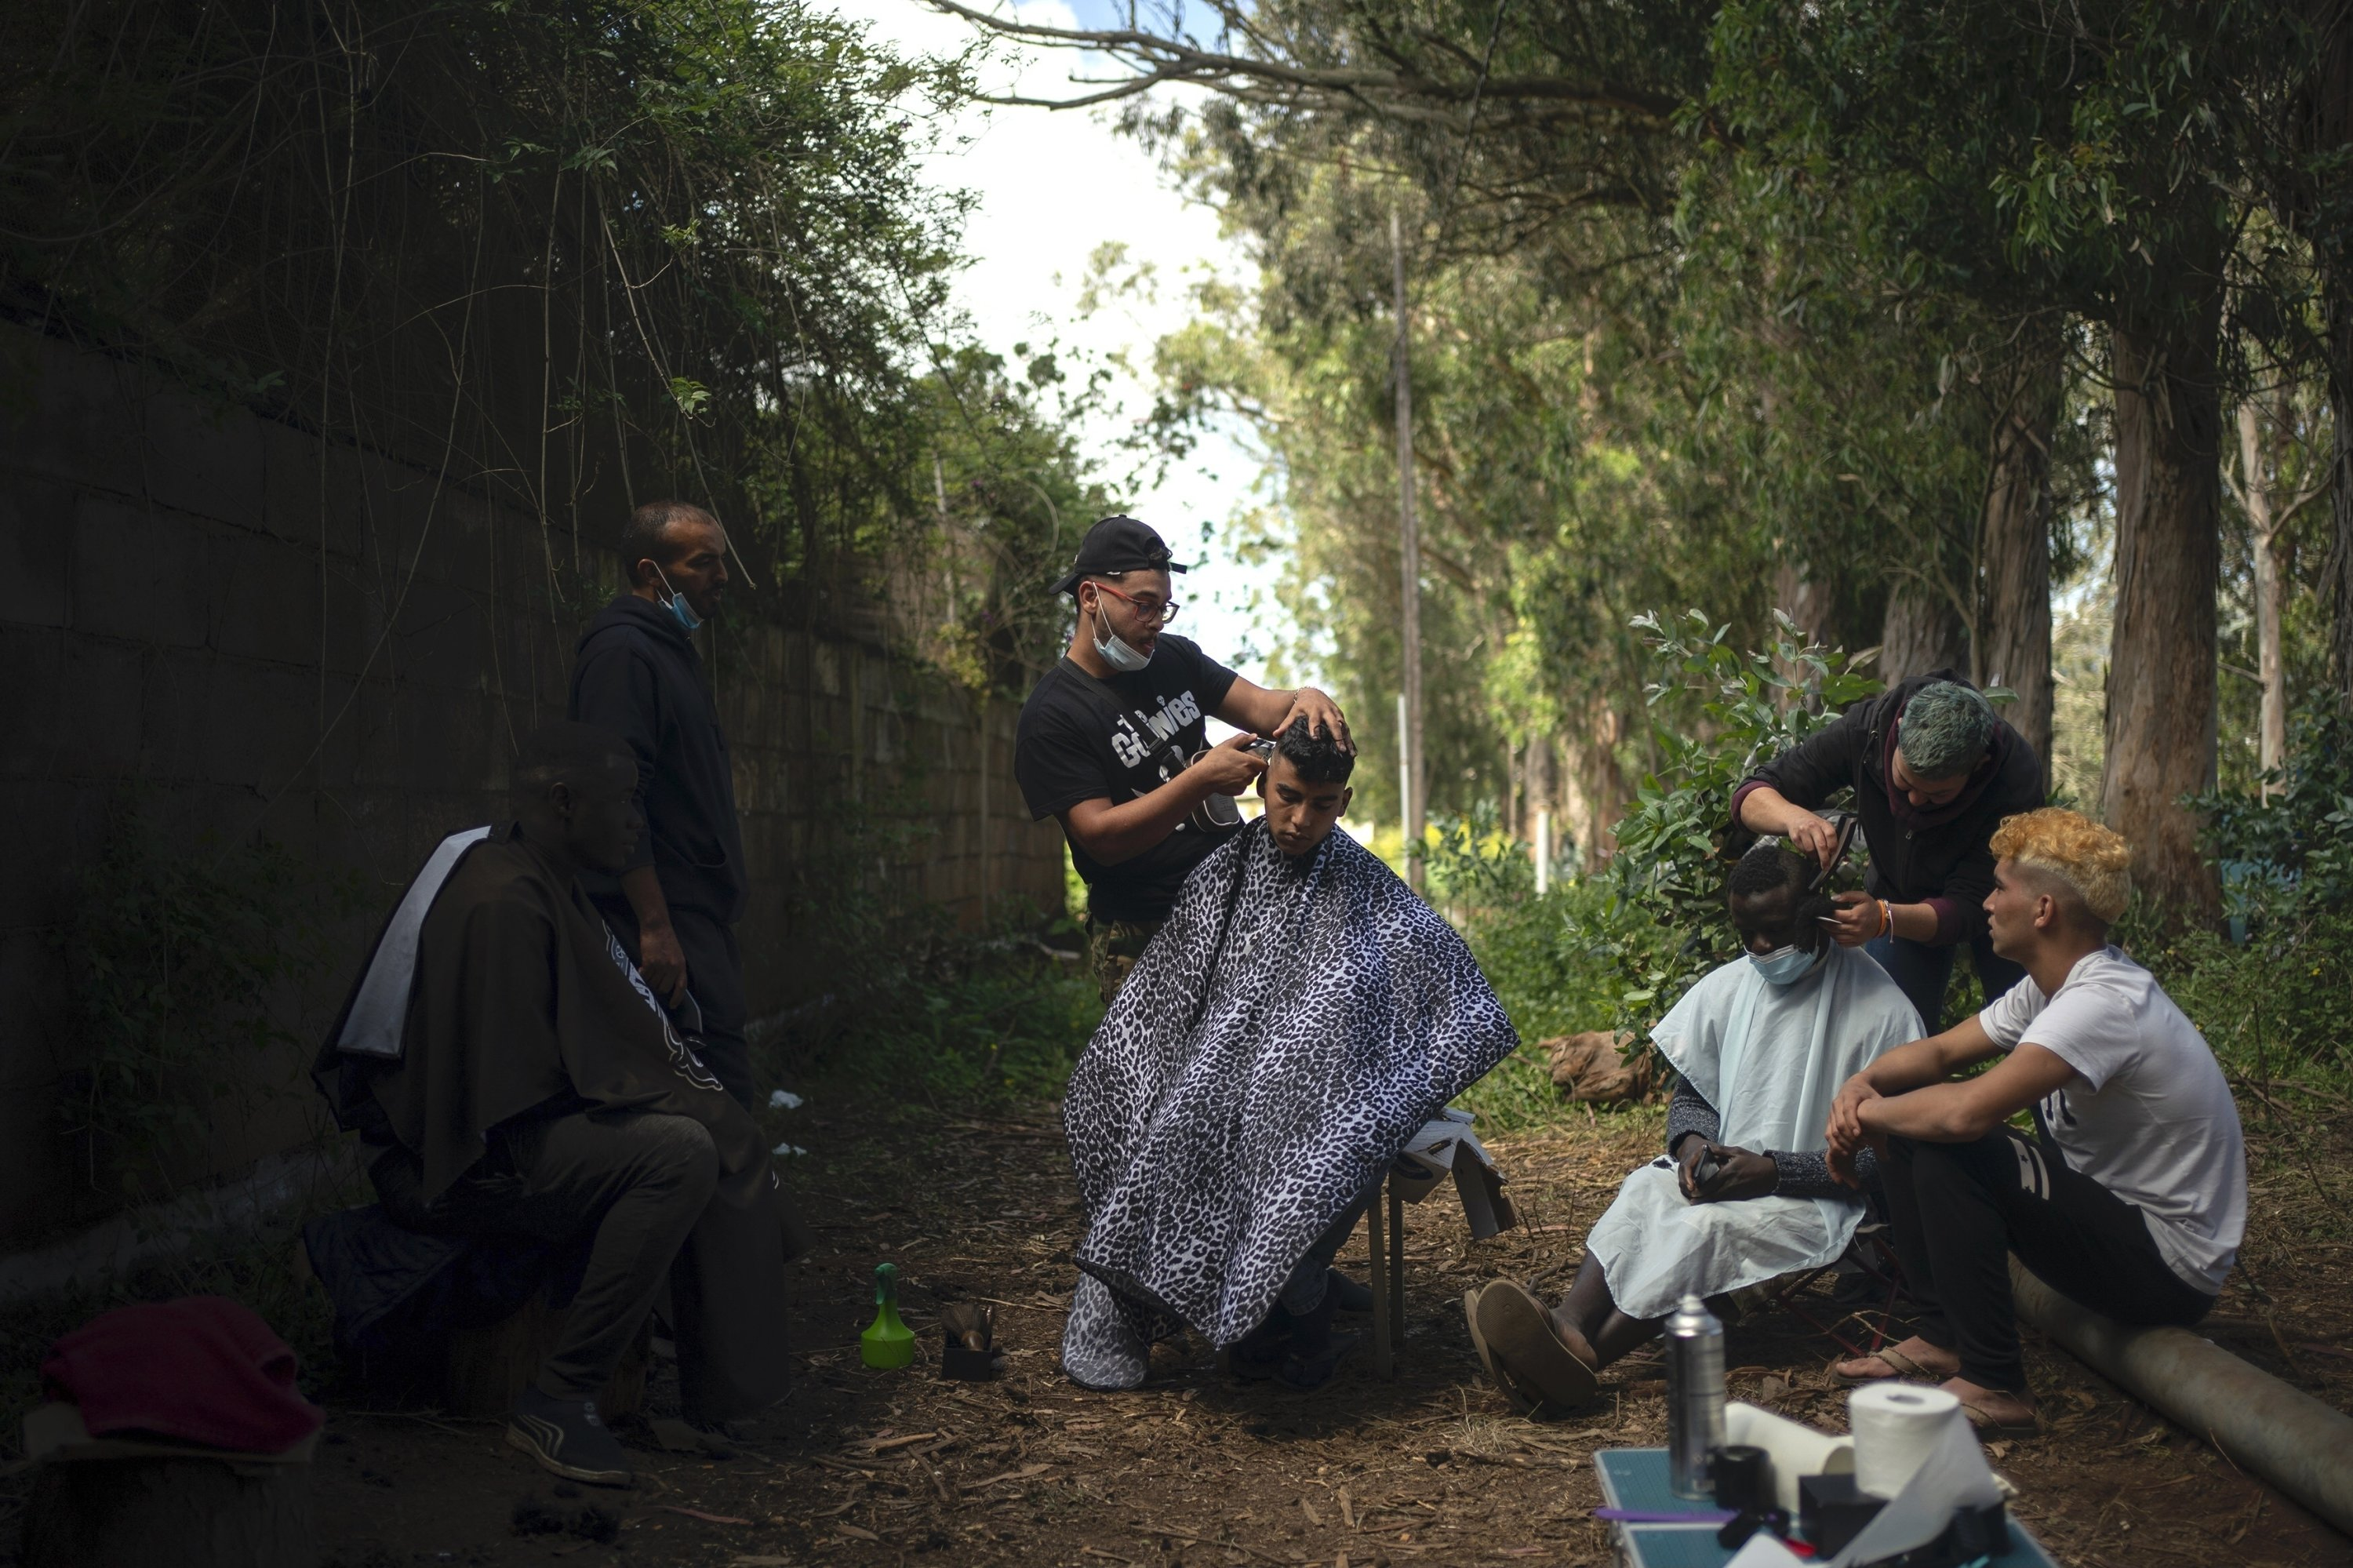 Yassime, 29, from Morocco cuts the hair of Ibrahim, 22, also from Morocco outside the Las Raices camp in San Cristobal de la Laguna, in the Canary Island of Tenerife, Spain, March 19, 2021. (AP Photo)